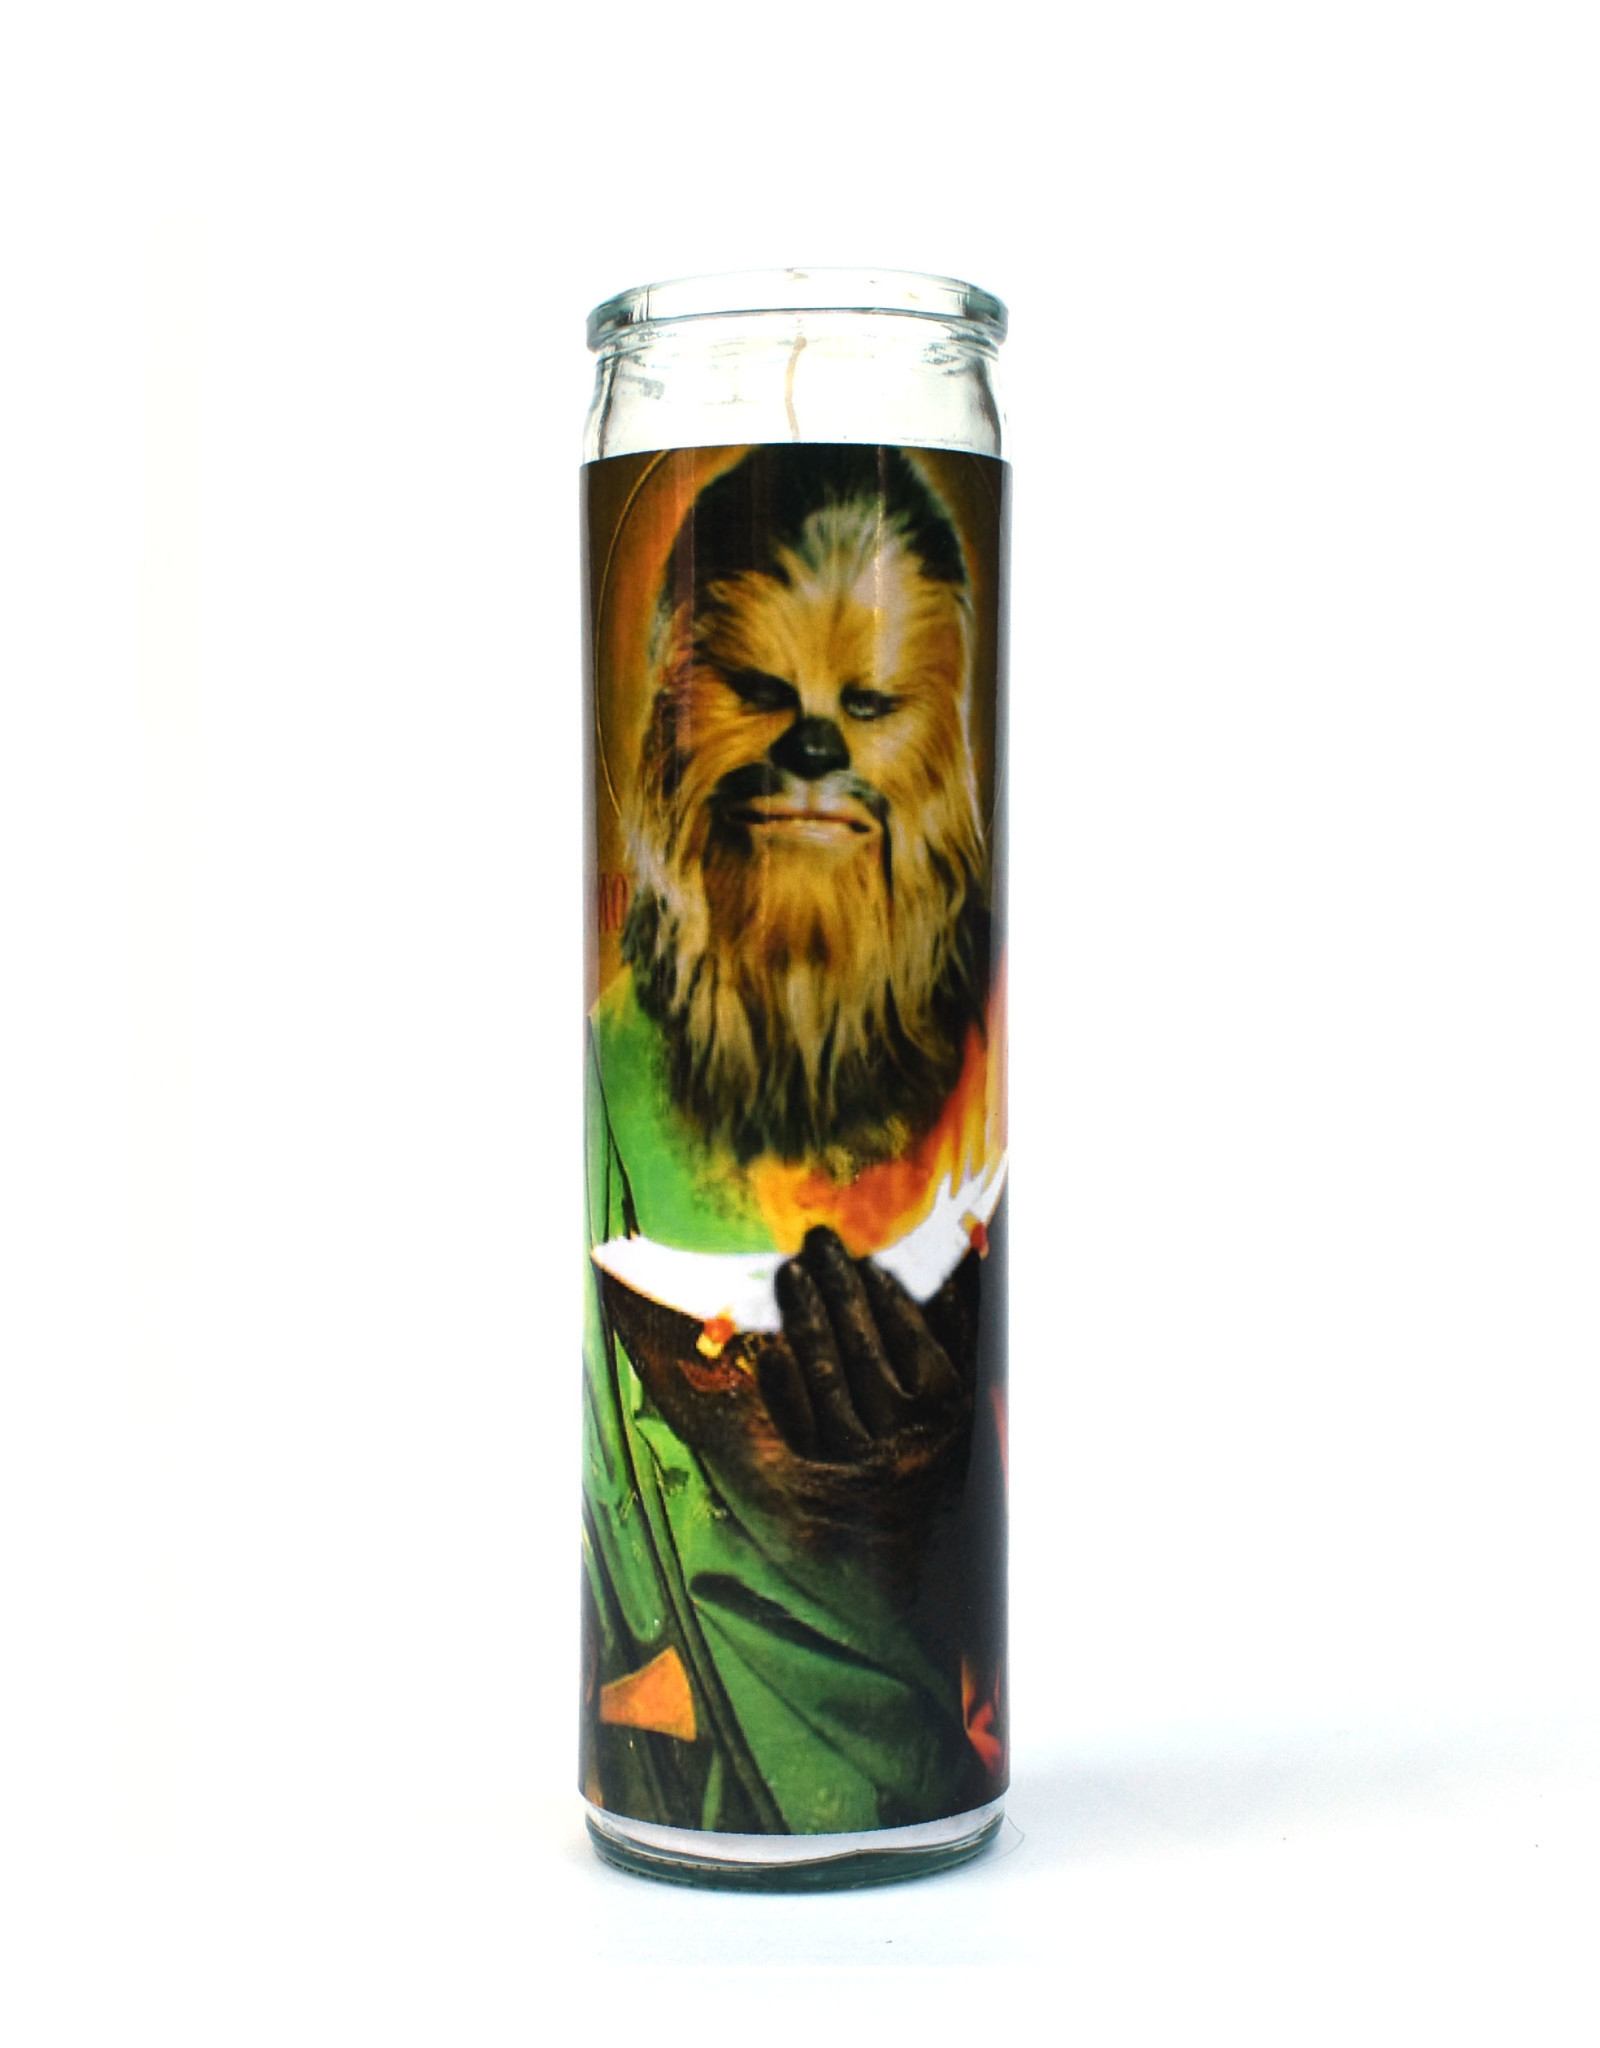 St. Chewbacca (Star Wars) Prayer Candle